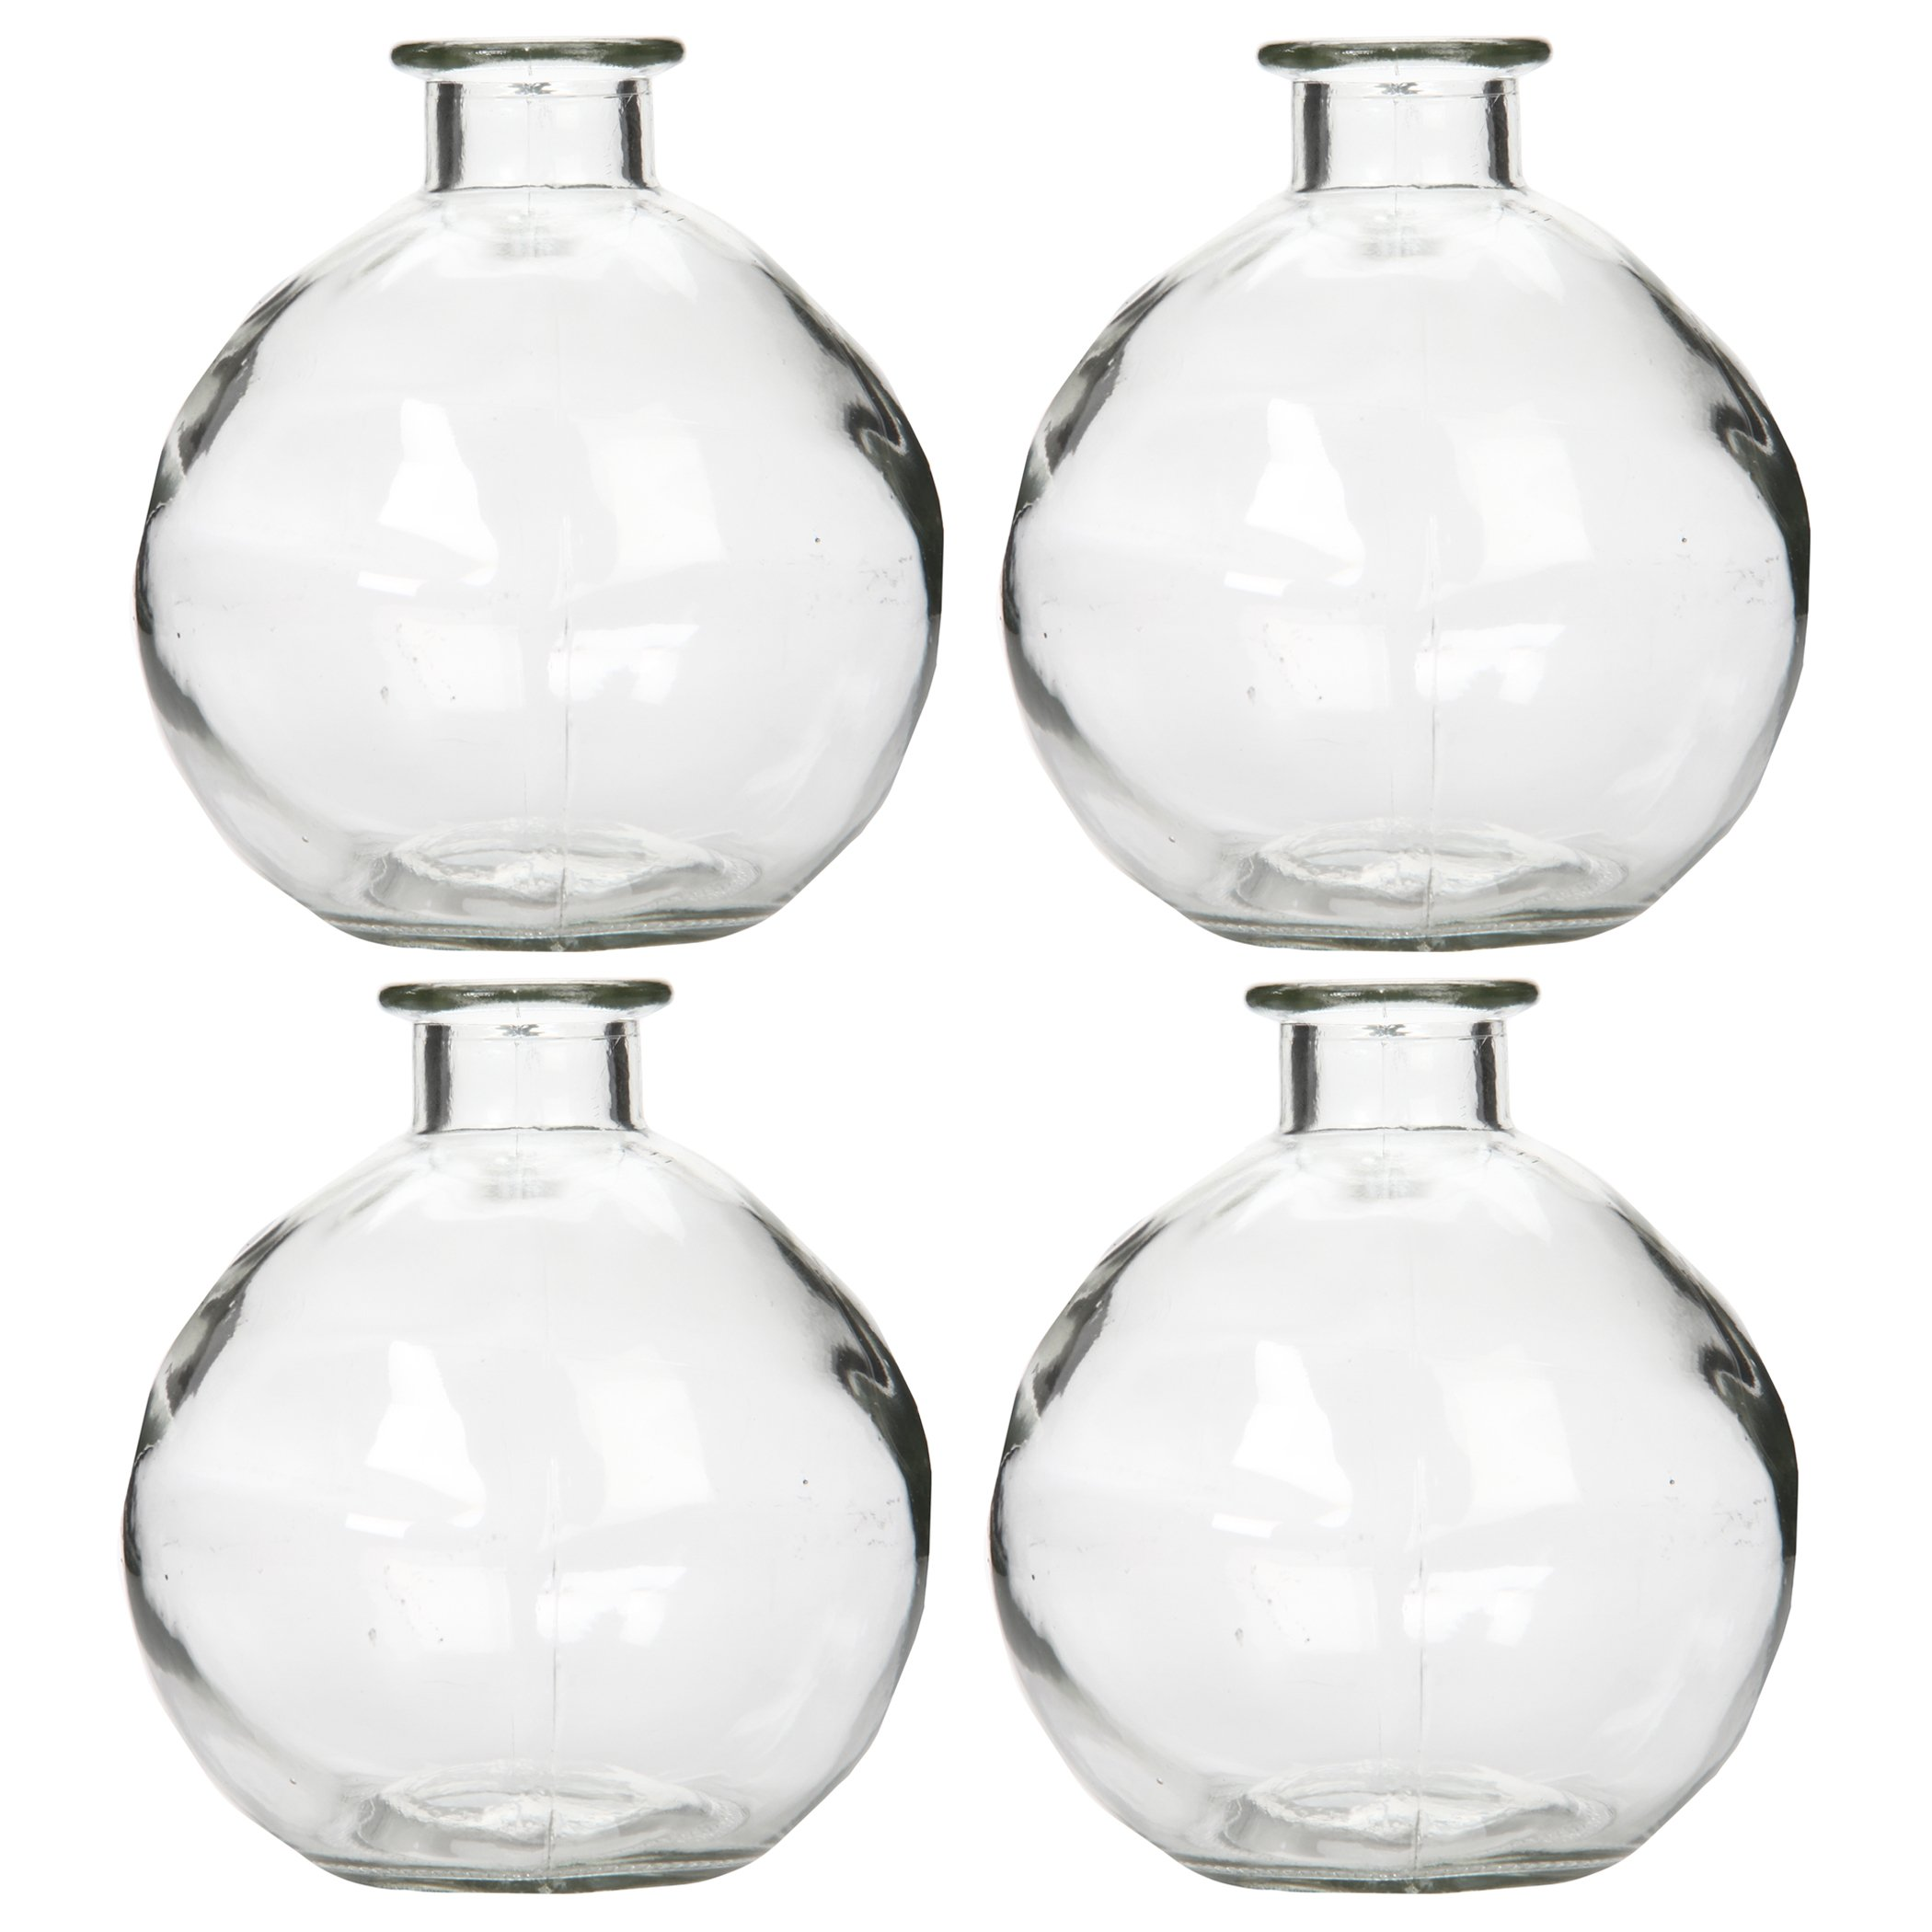 Hosley Set of 4 Glass Bottles - 250ml - Ideal Gift for Wedding or Flower Vase, Bud vase DIY Crafts, Diffuser Refill, Aromatherapy Oils Storage O4